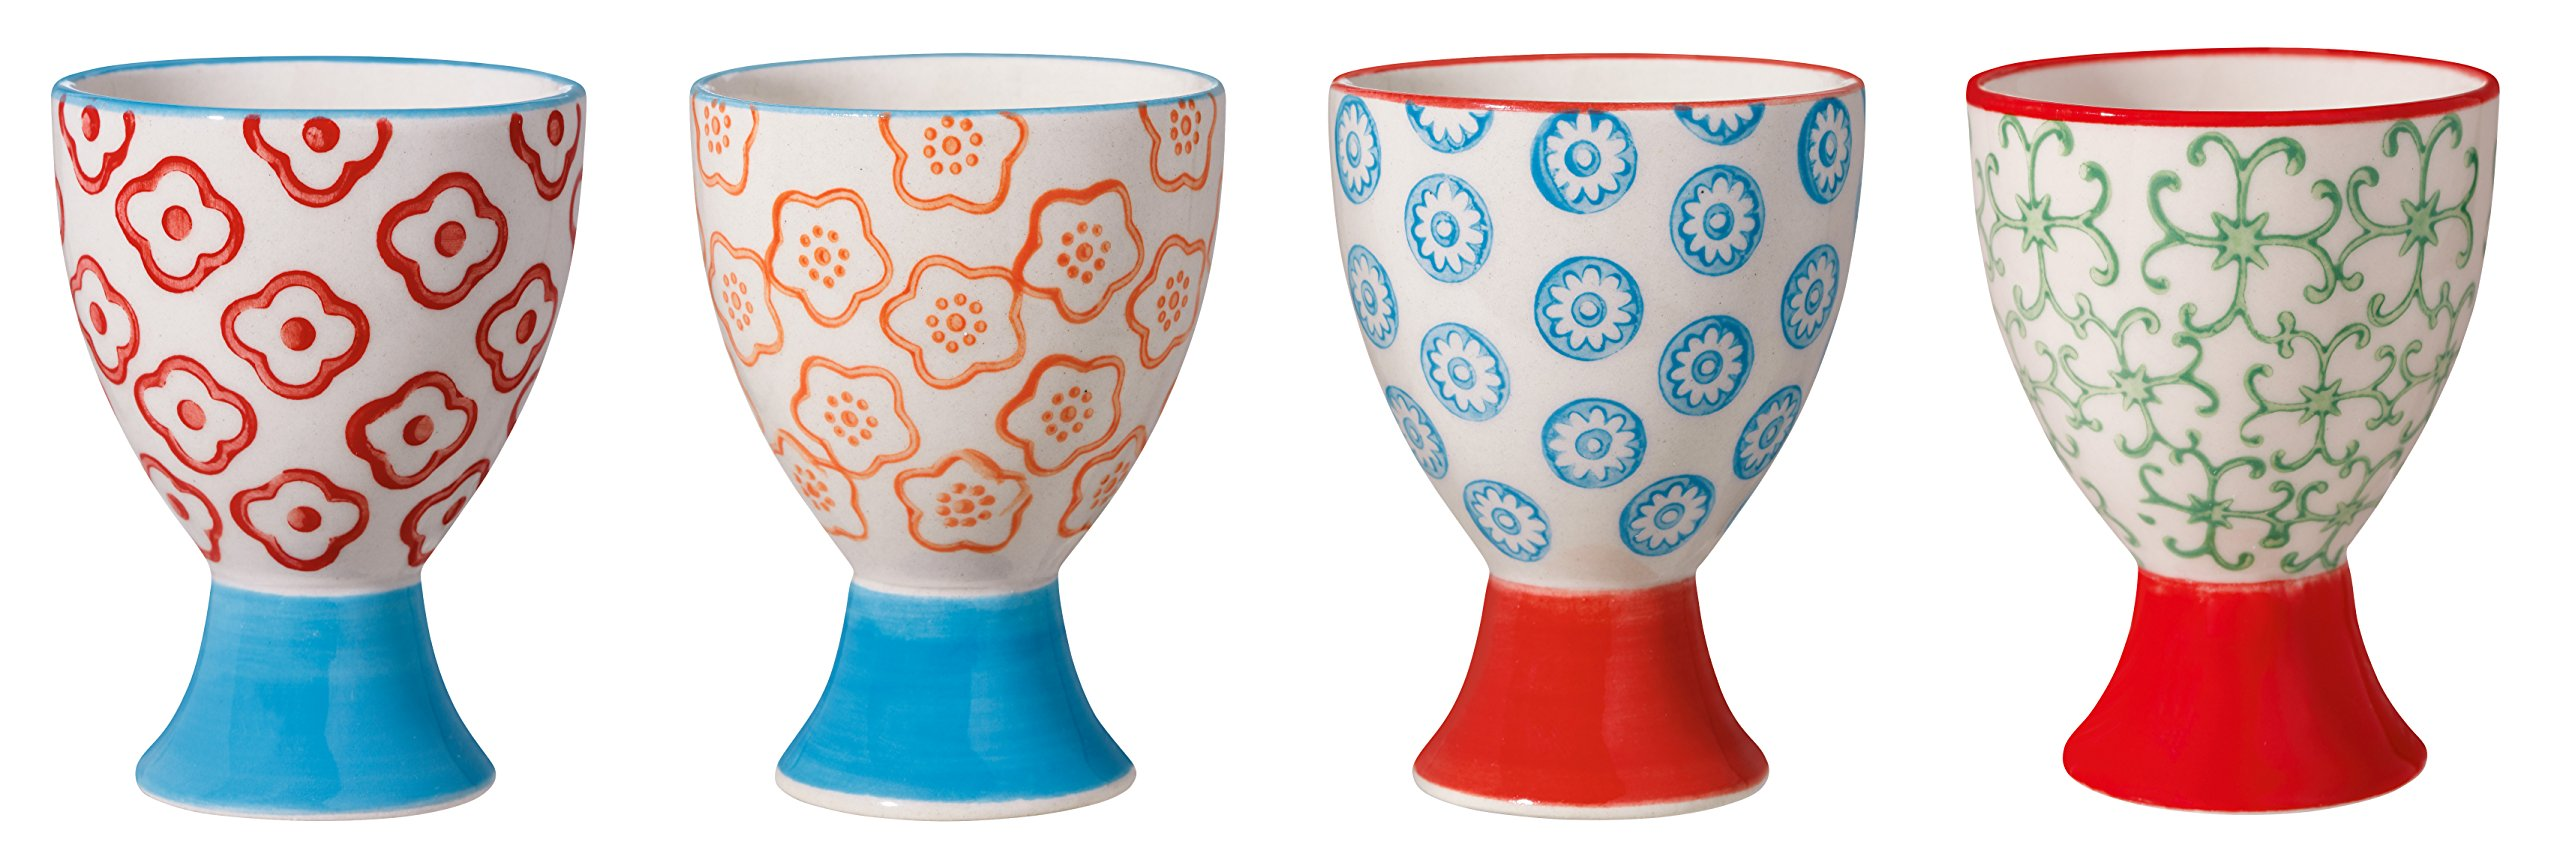 Bloomingville Egg Cups Emma Set of 4 Styles